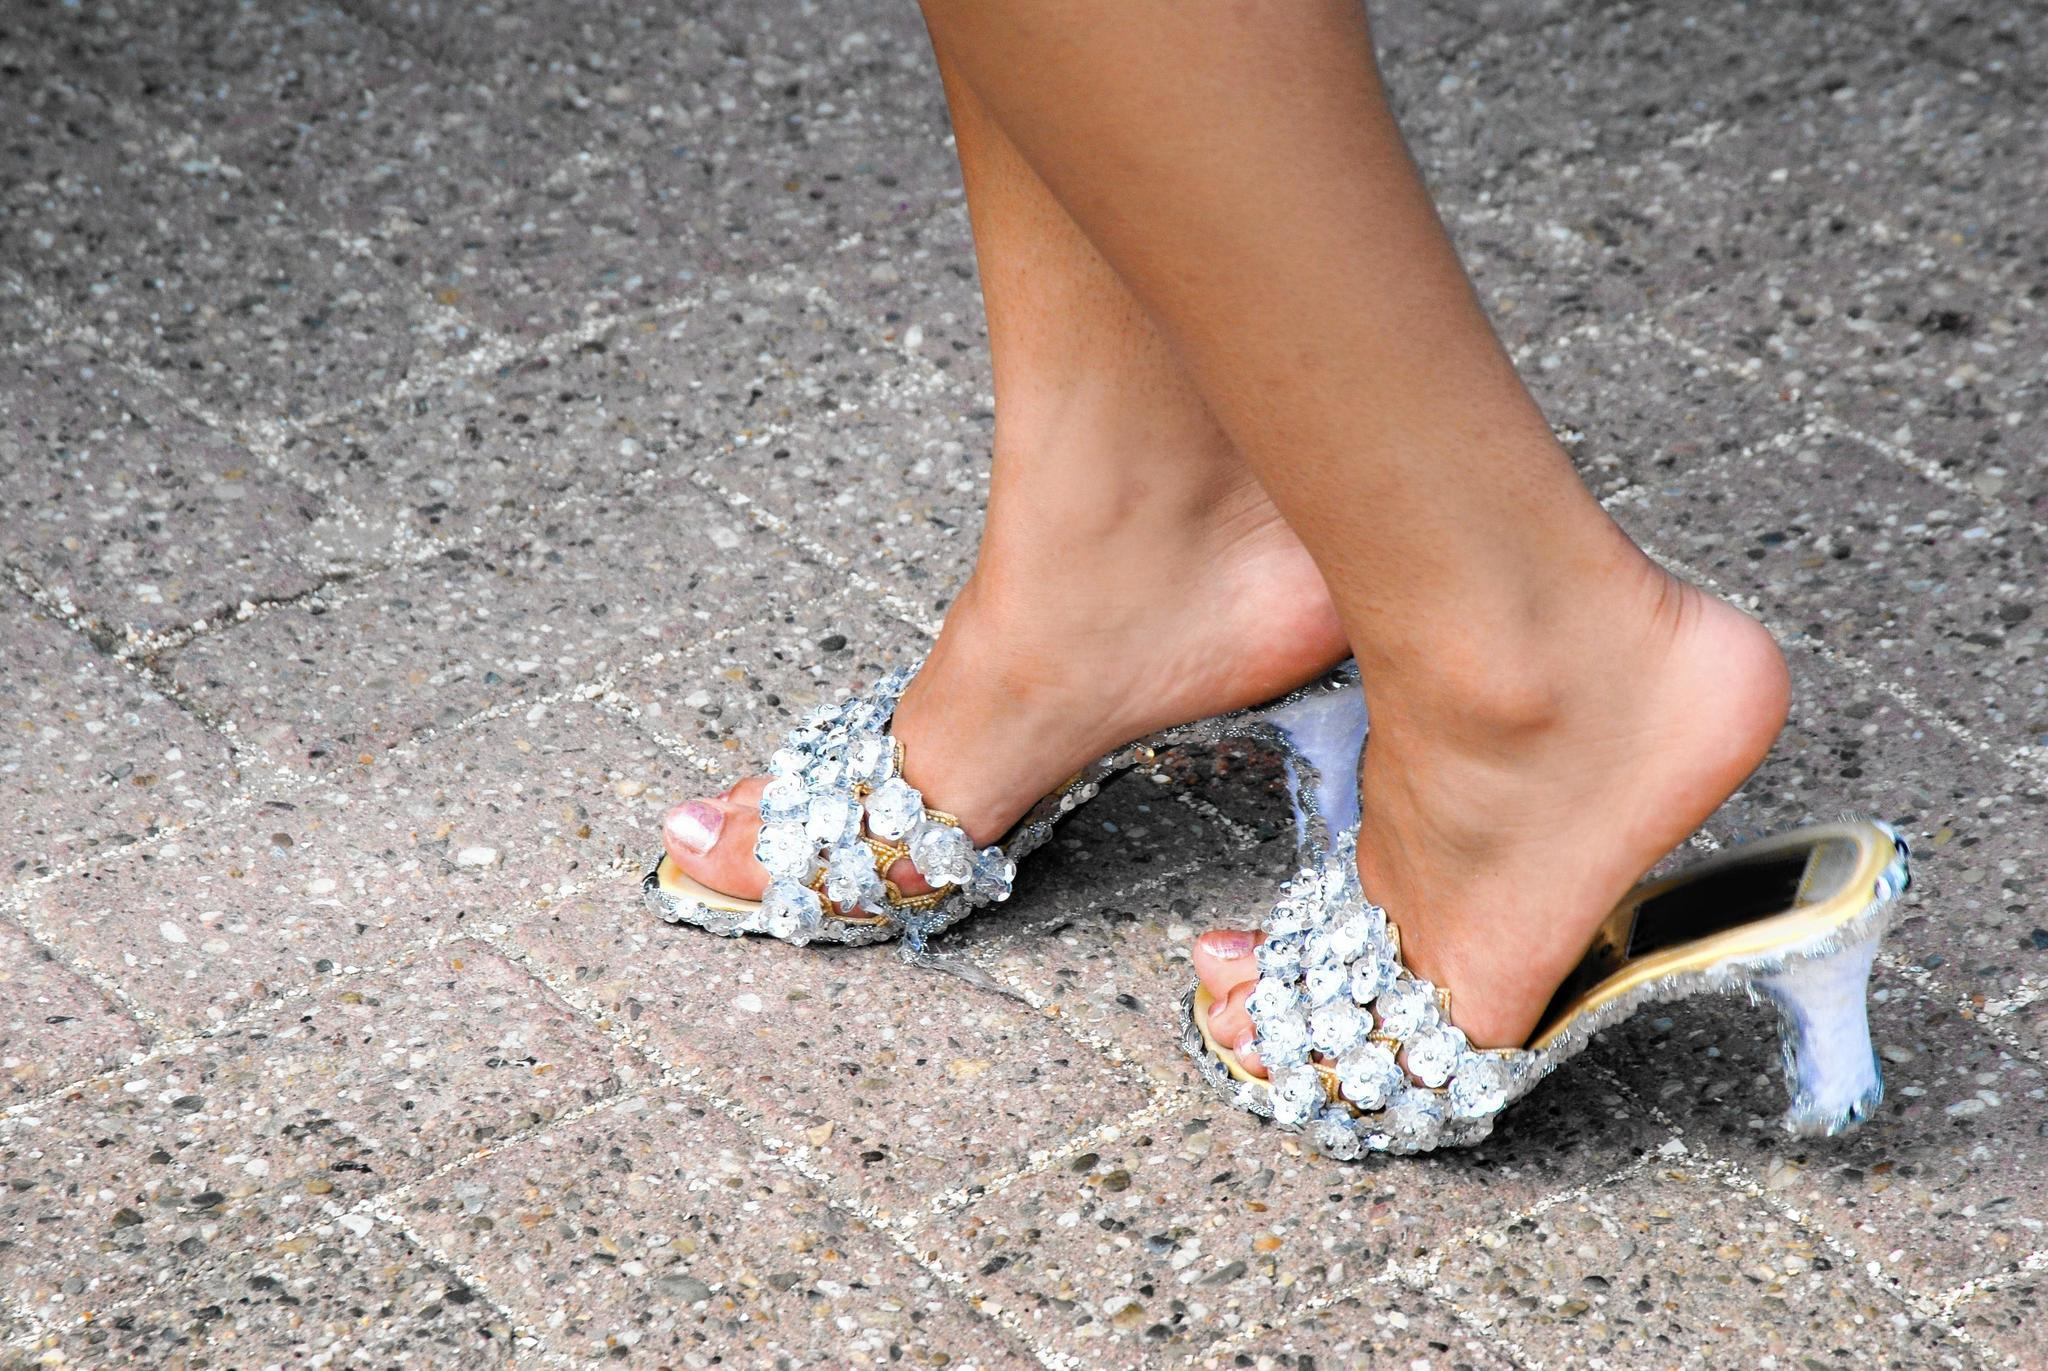 a383f00f032 What to do about noisy shoes - Chicago Tribune